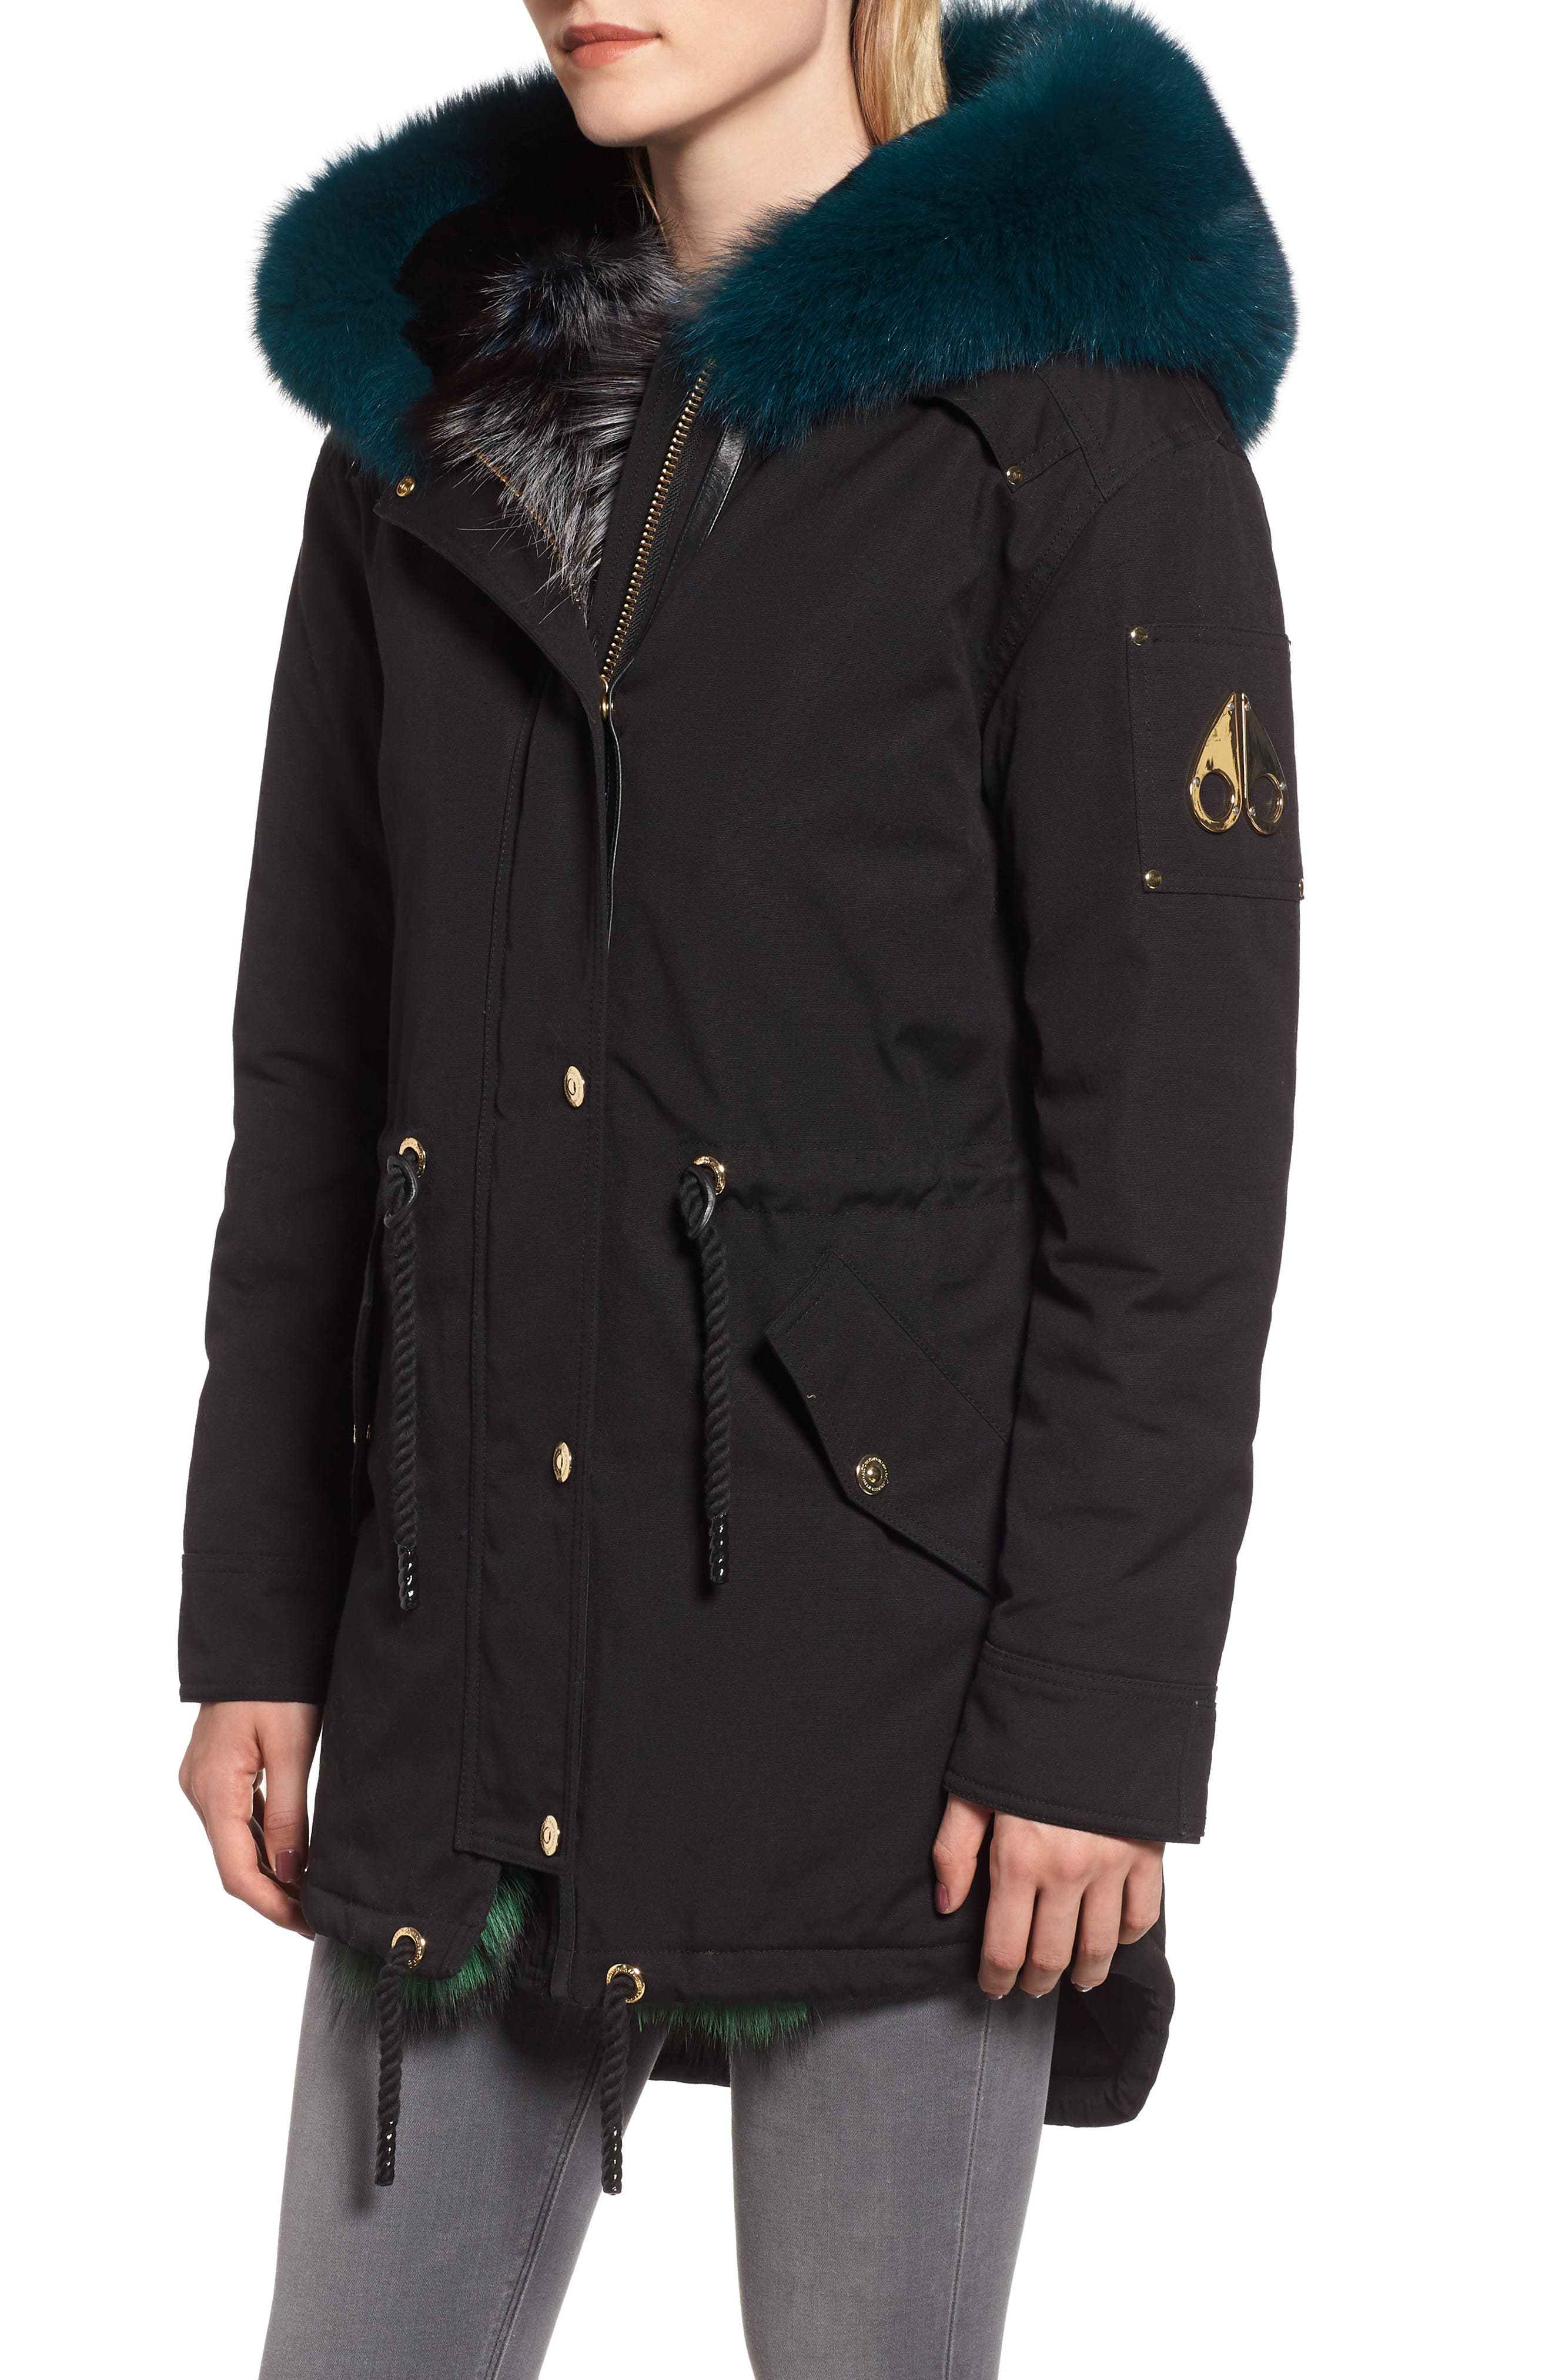 Foxy Stellar Parka with Genuine Rabbit Fur & Genuine Fox Fur,                             Alternate thumbnail 4, color,                             BLACK/ TEAL/ SKY BLUE/ GREEN